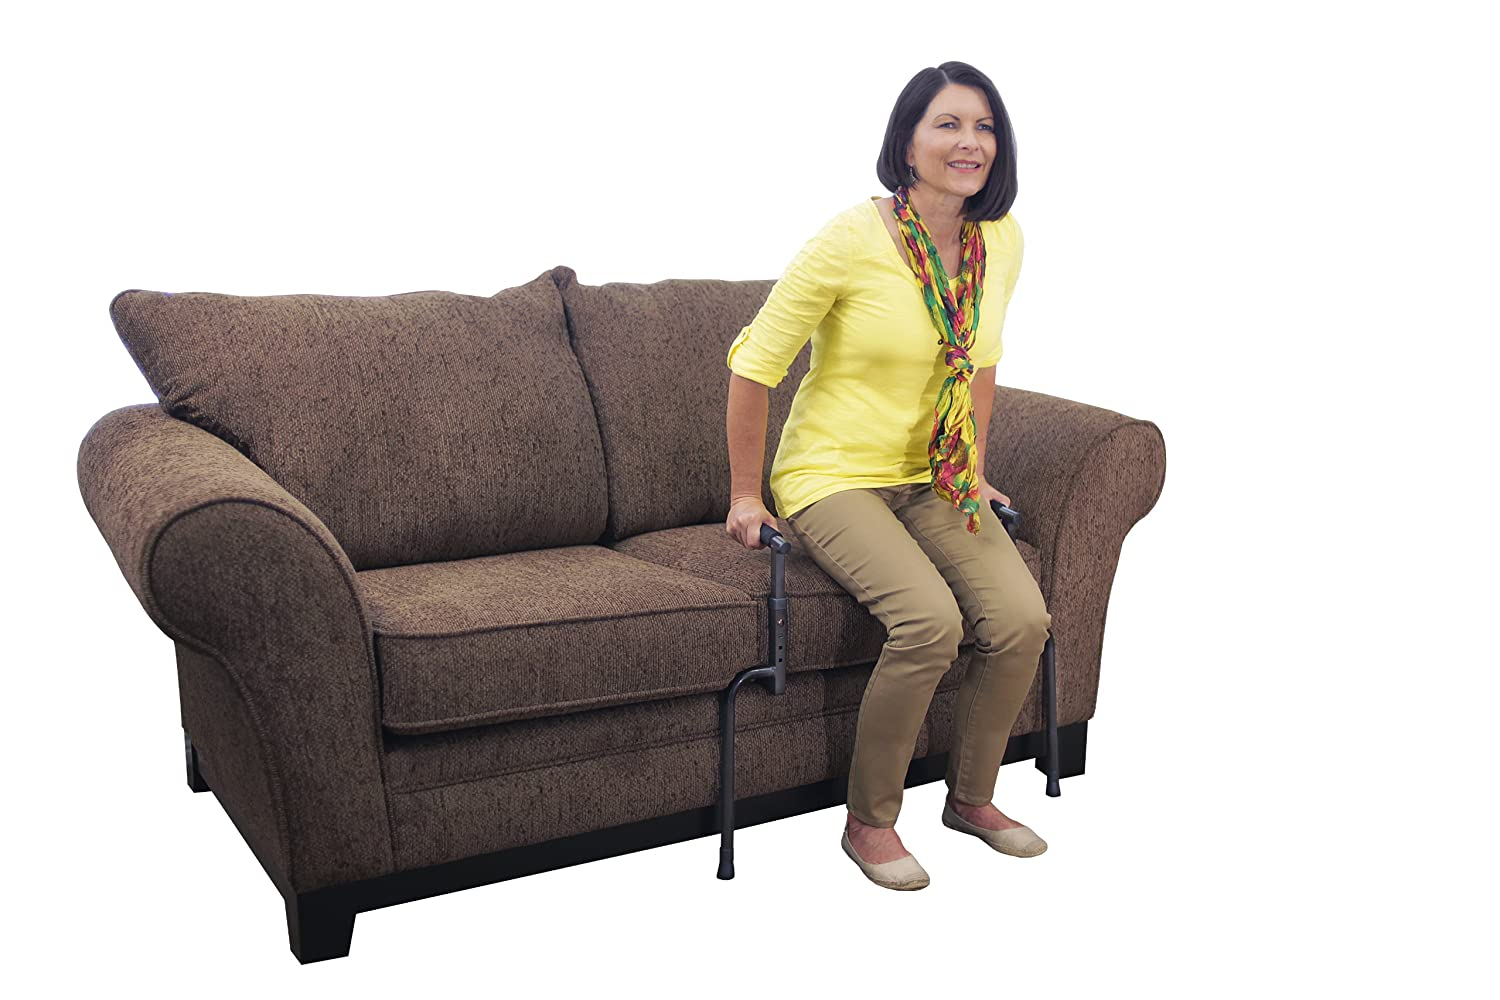 Able Life Universal Stand Assist - Adjustable Standing Mobility Aid + Assist Handle for Couch Chair & Sofa + Dual Cushioned Support Handles for Fall Protection 8150